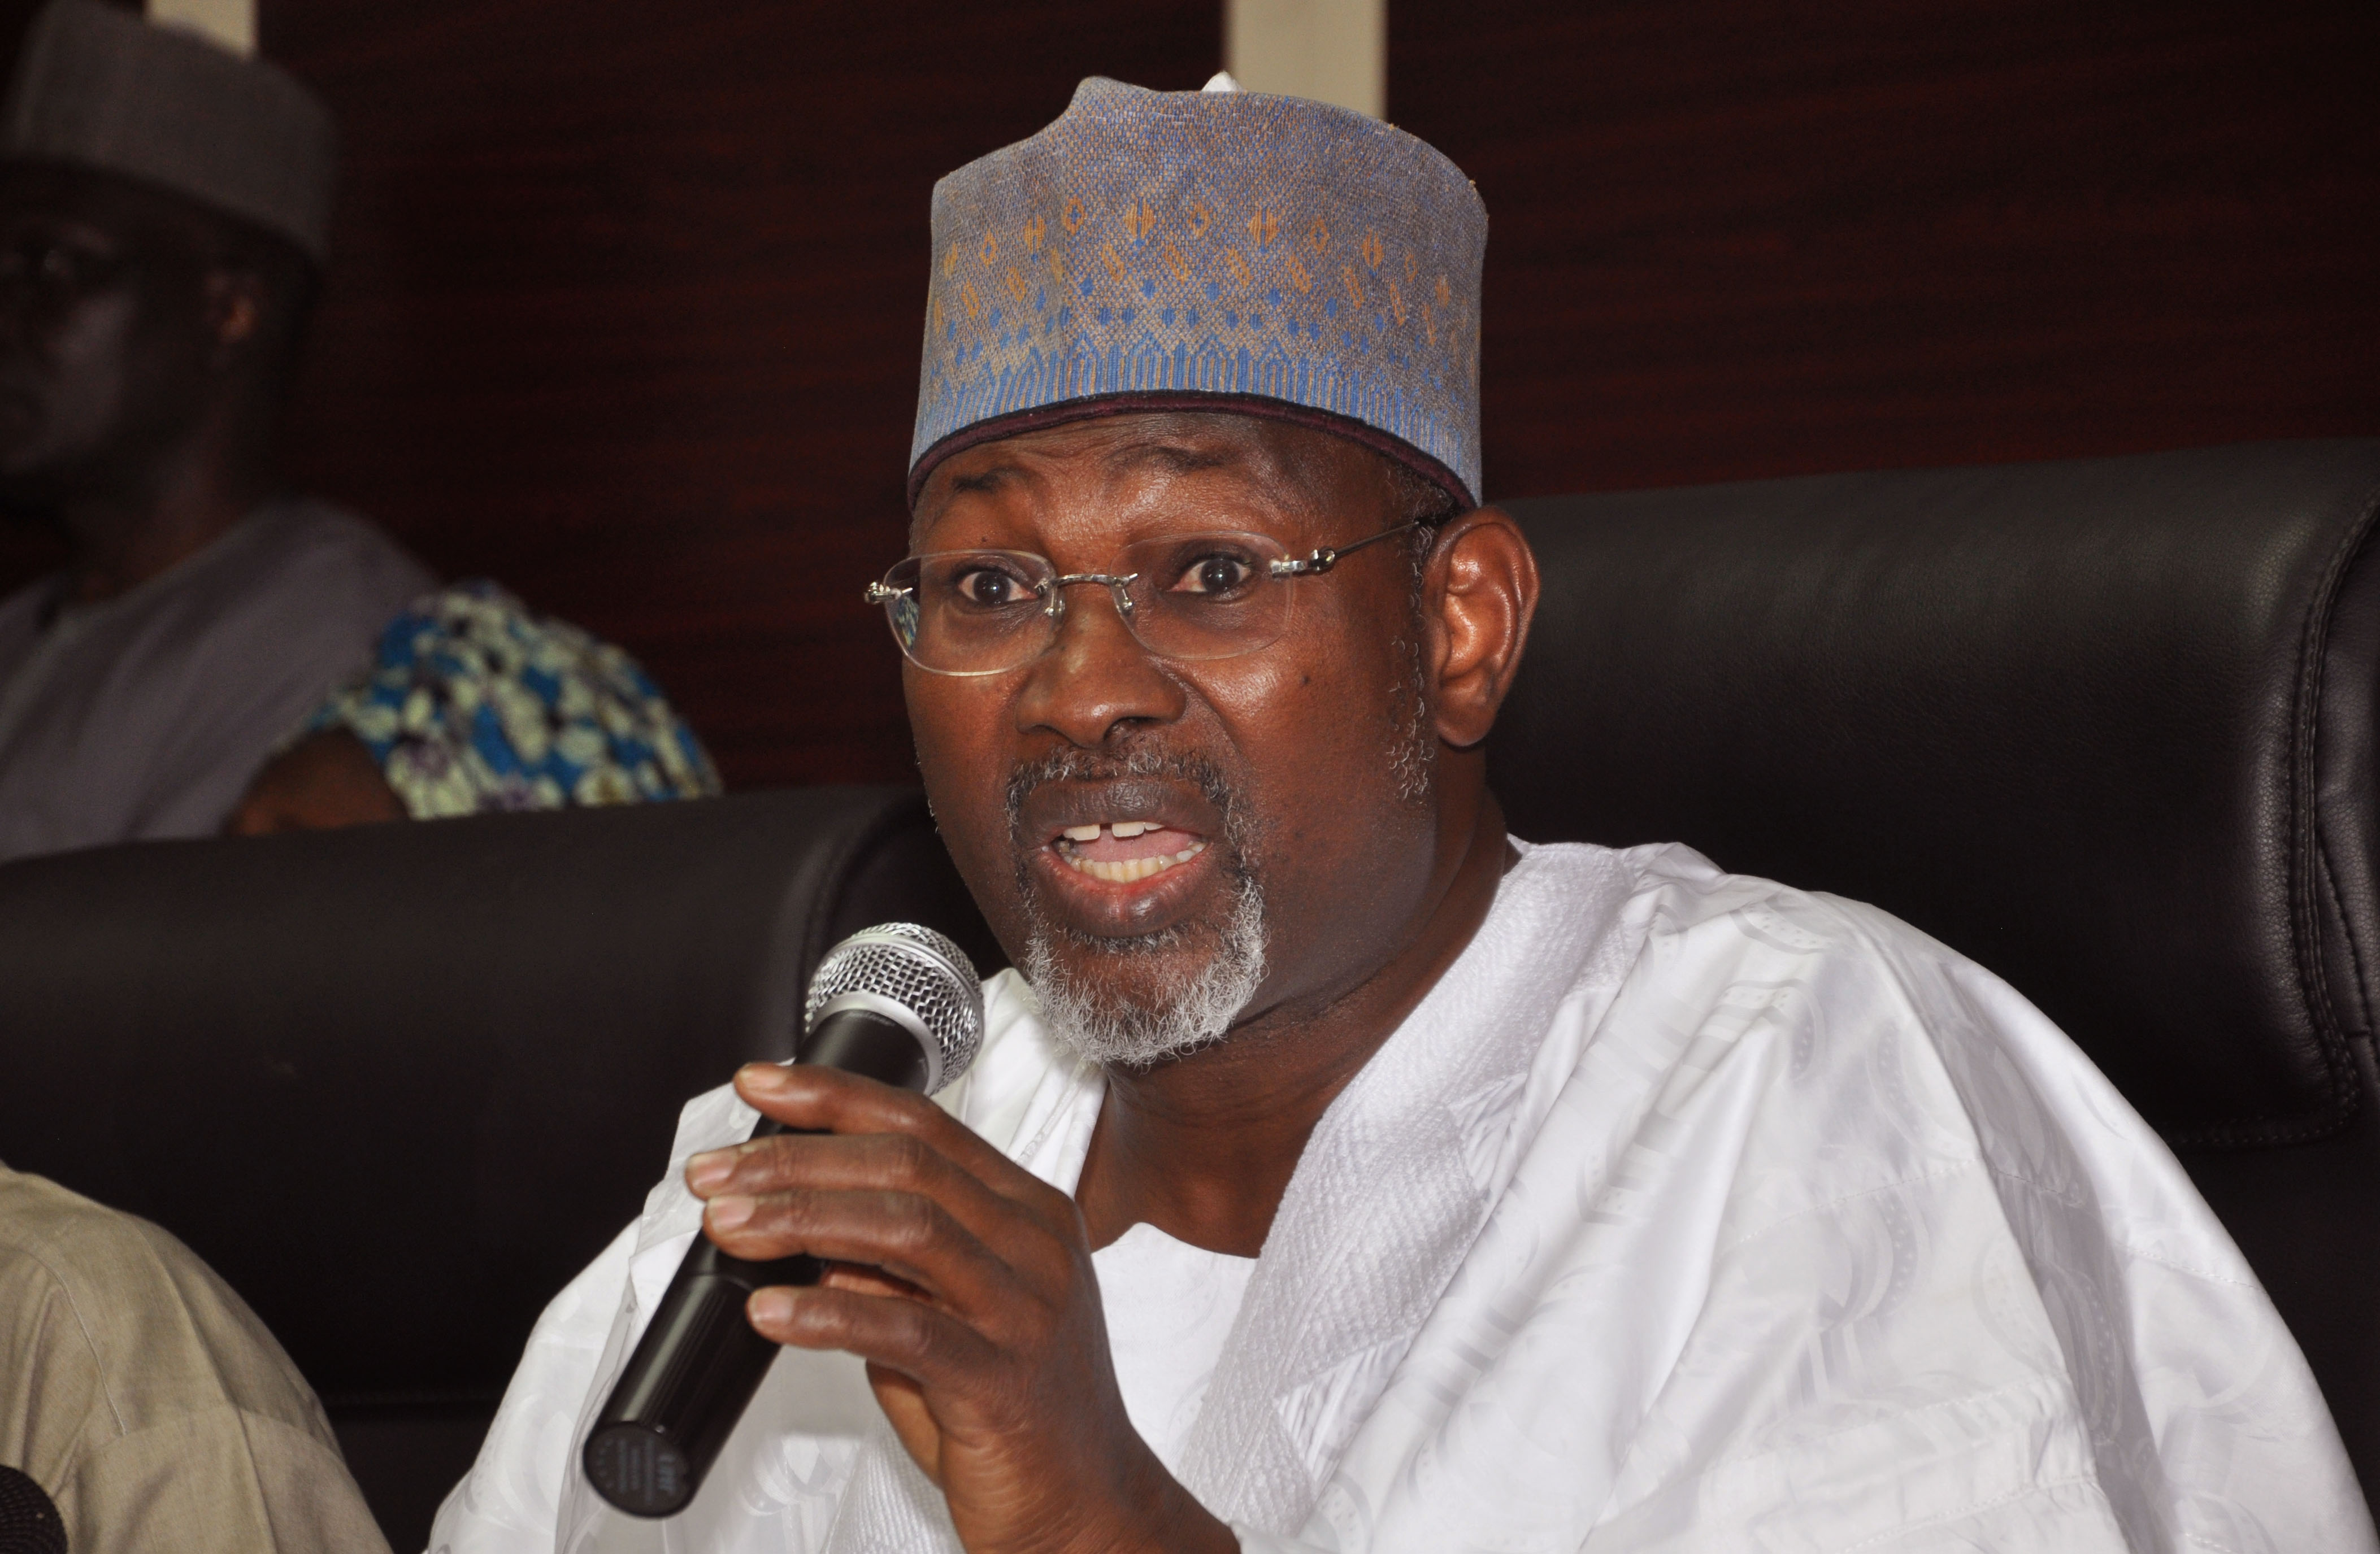 Independent National Electoral Commission Chairman, Attahiru Jega